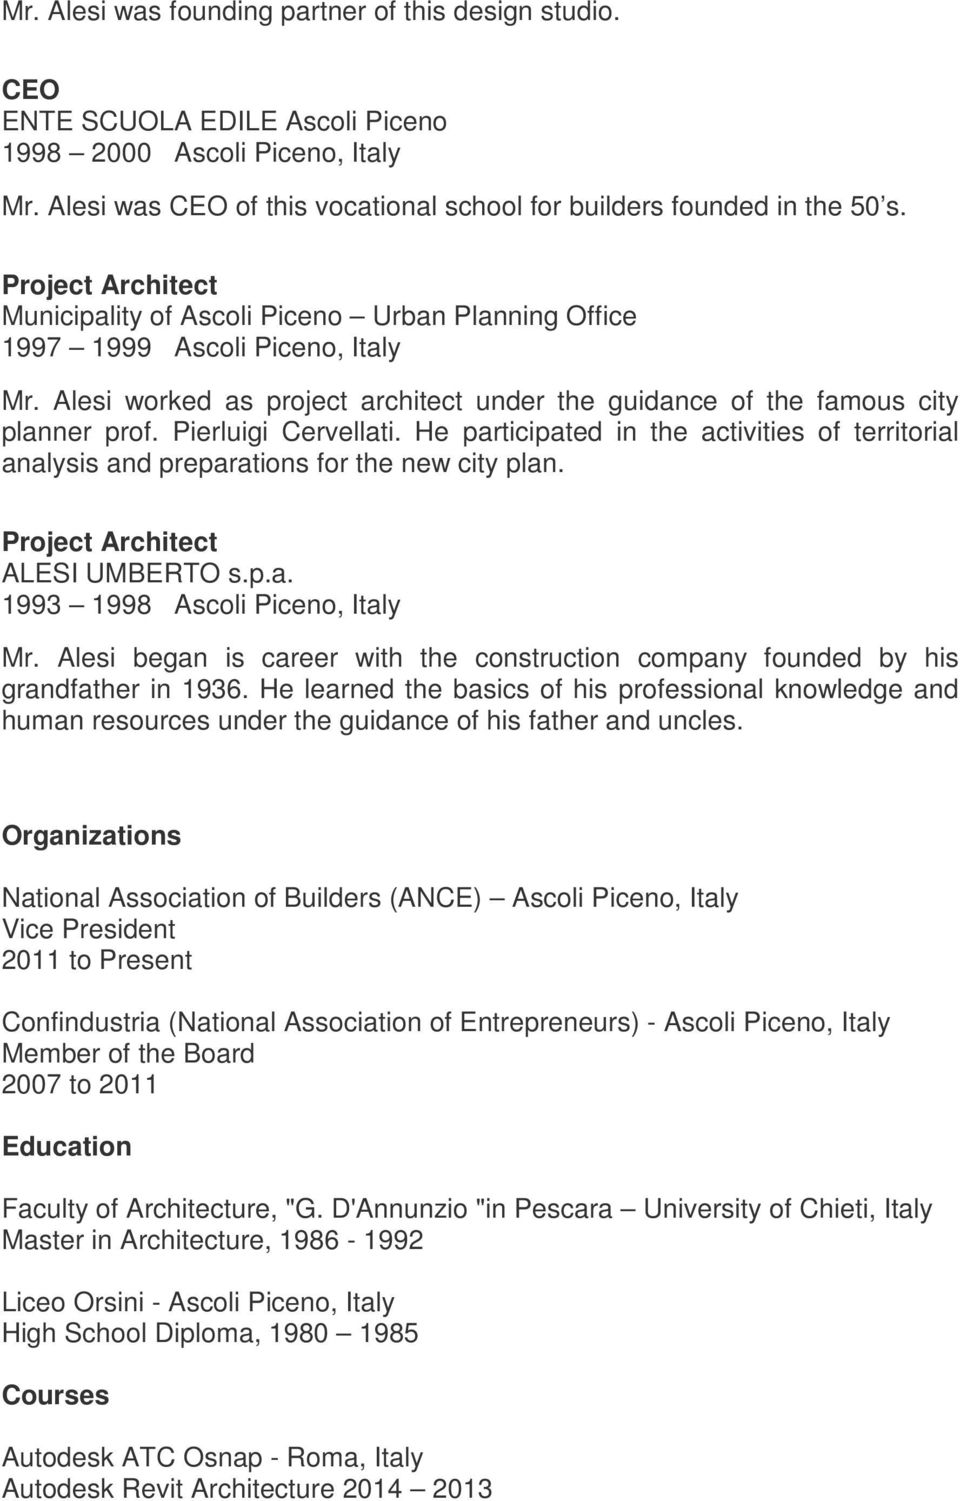 Pierluigi Cervellati. He participated in the activities of territorial analysis and preparations for the new city plan. Project Architect ALESI UMBERTO s.p.a. 1993 1998 Ascoli Piceno, Italy Mr.